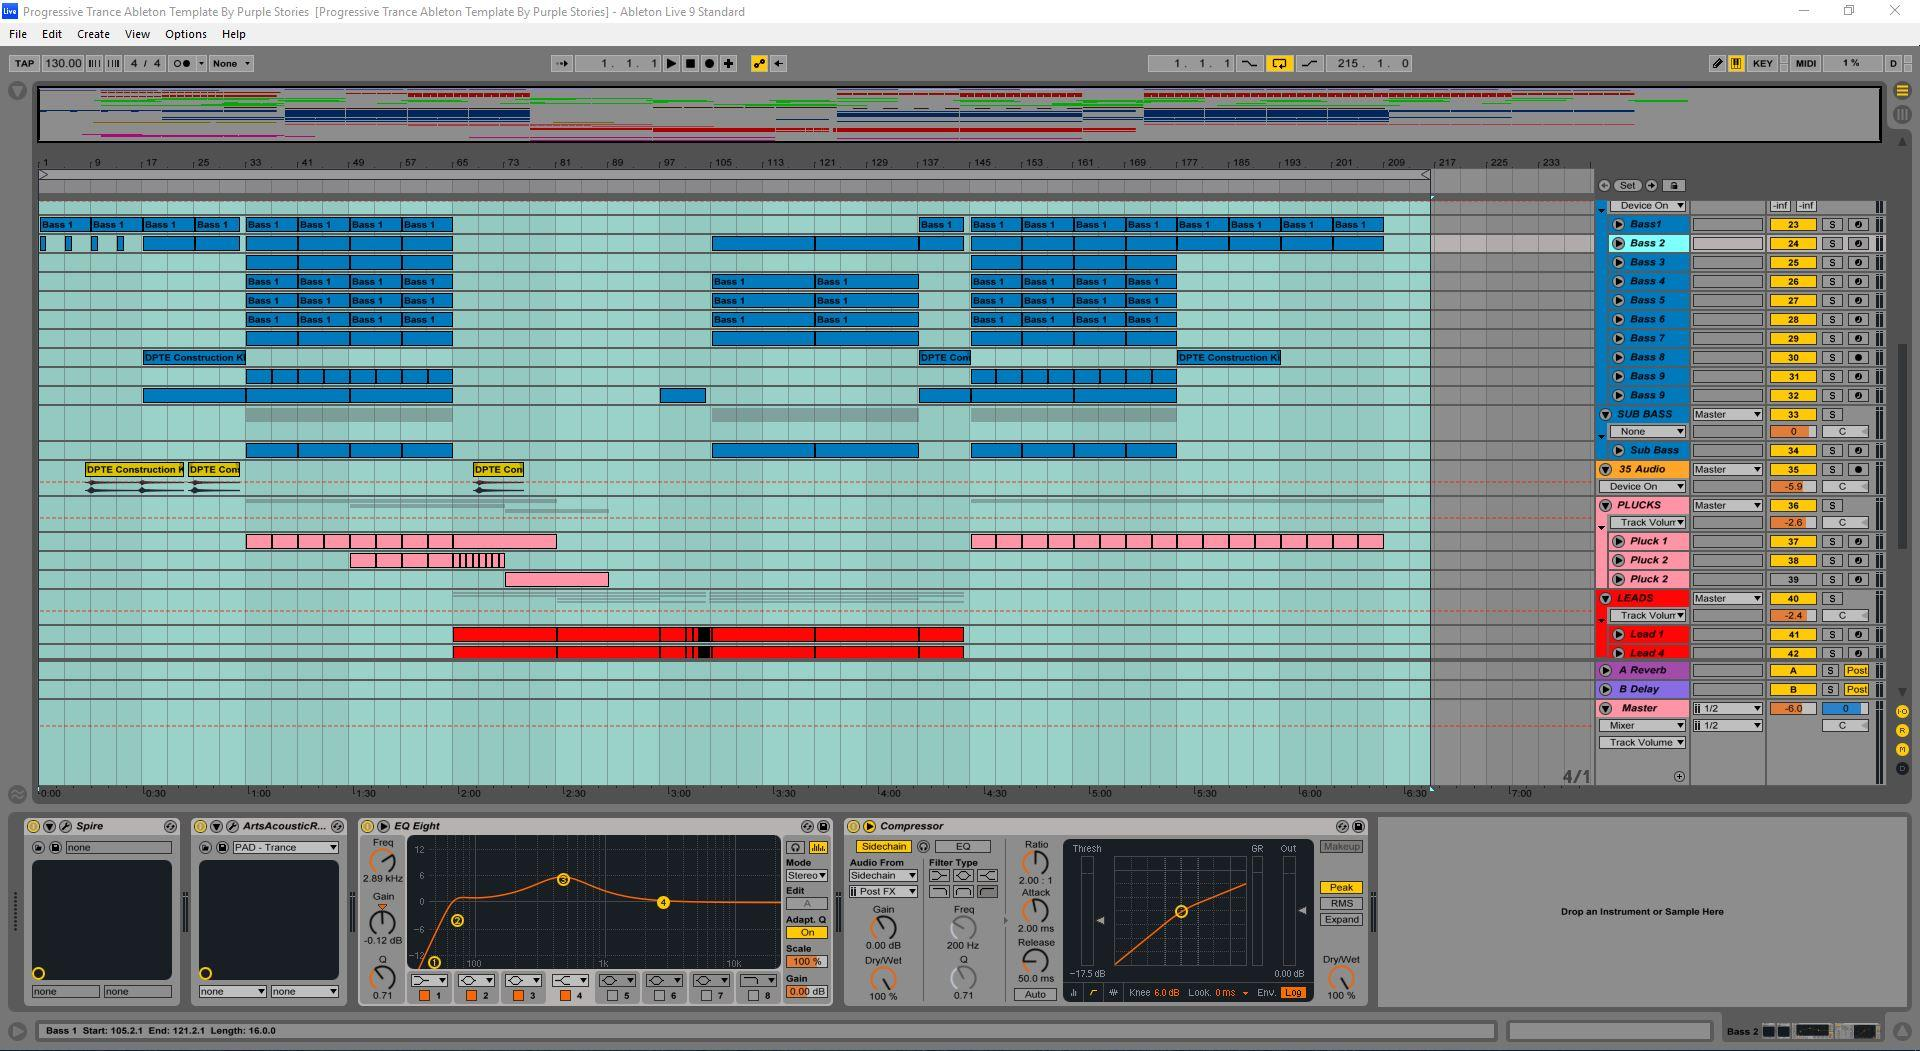 progressive-trance-template-by-purple-stories-ableton-live